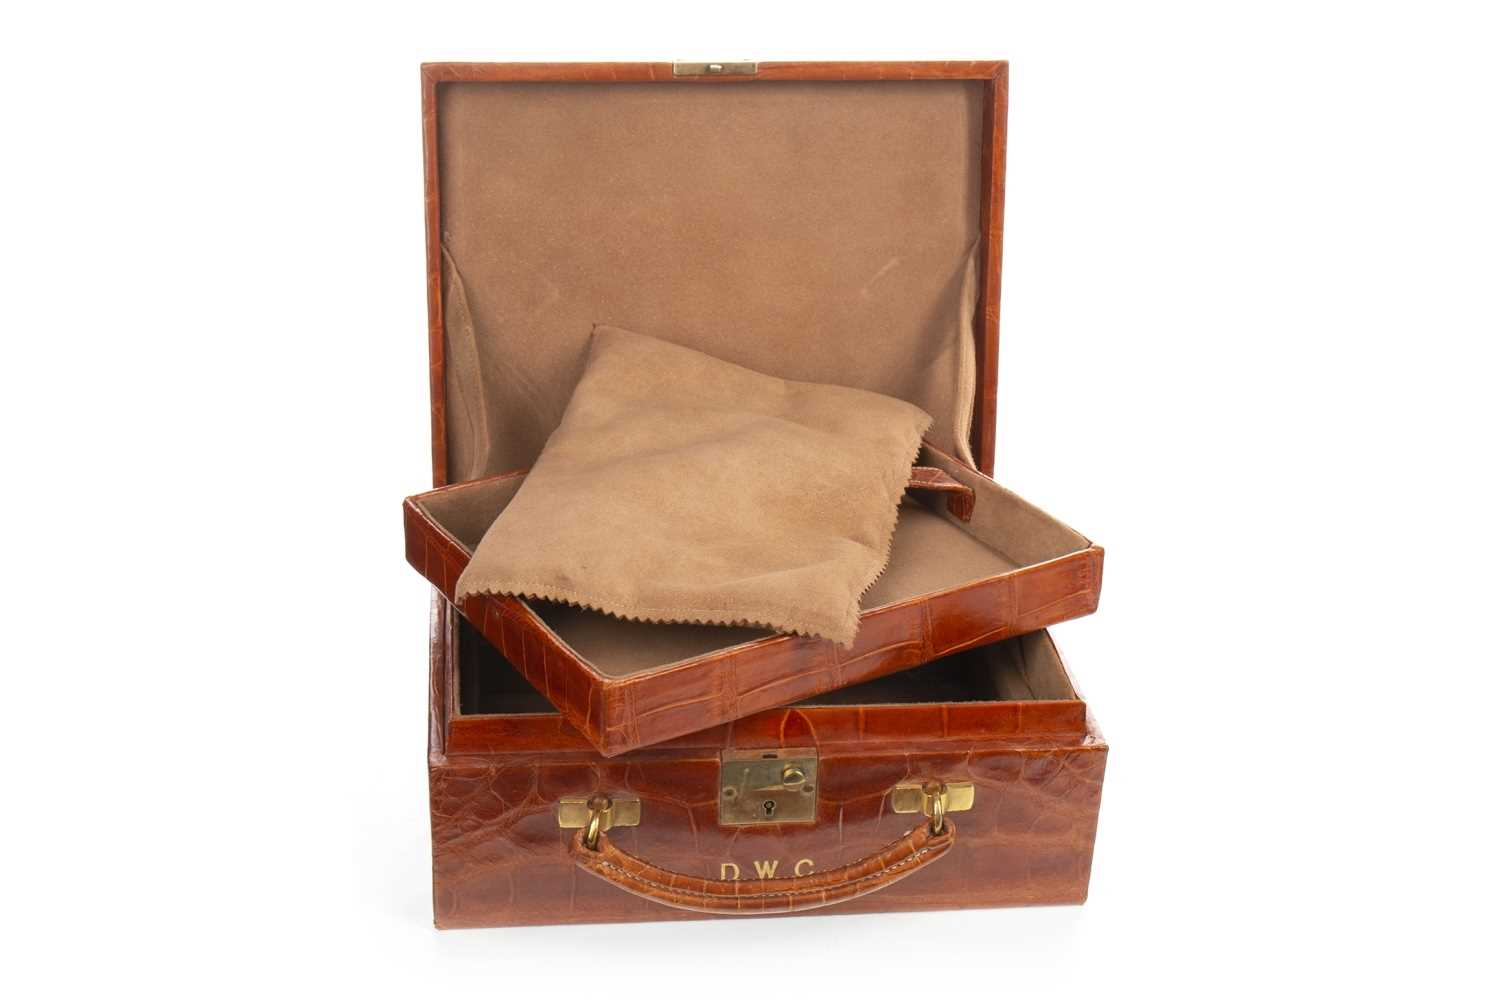 Lot 1646-AN EARLY 20TH CENTURY CROCODILE SKIN TRAVEL CASE